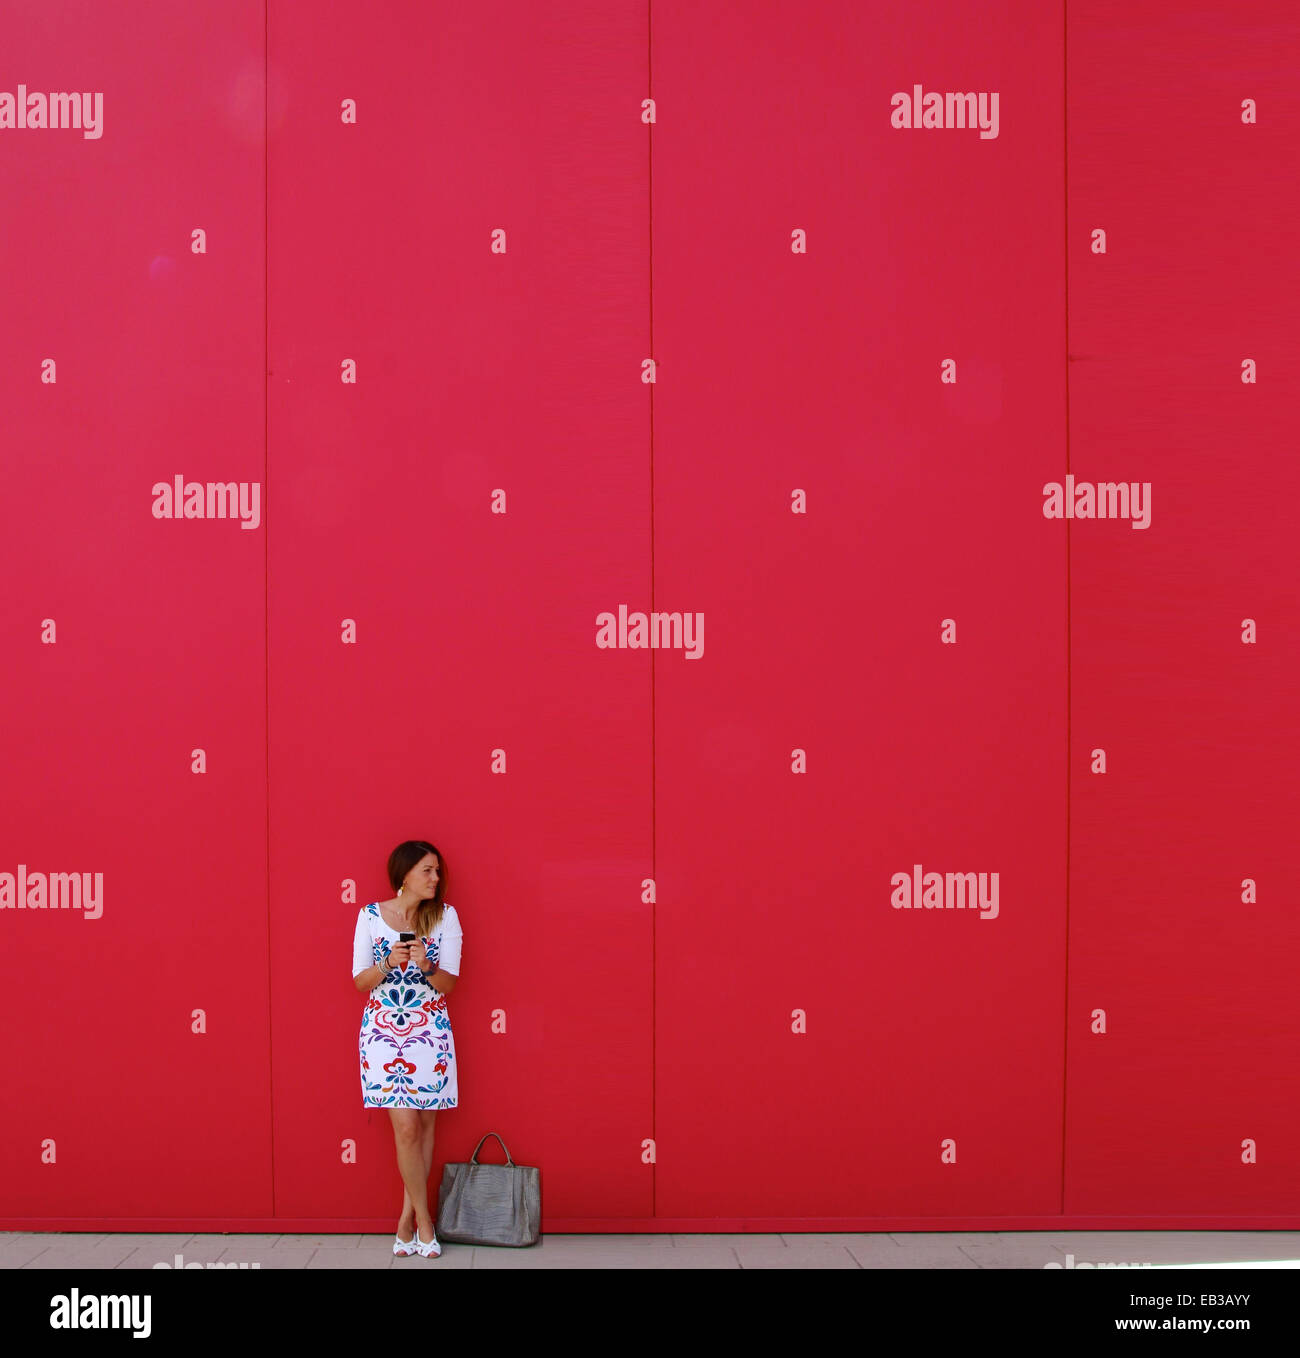 Woman standing in front of a red wall text messaging - Stock Image